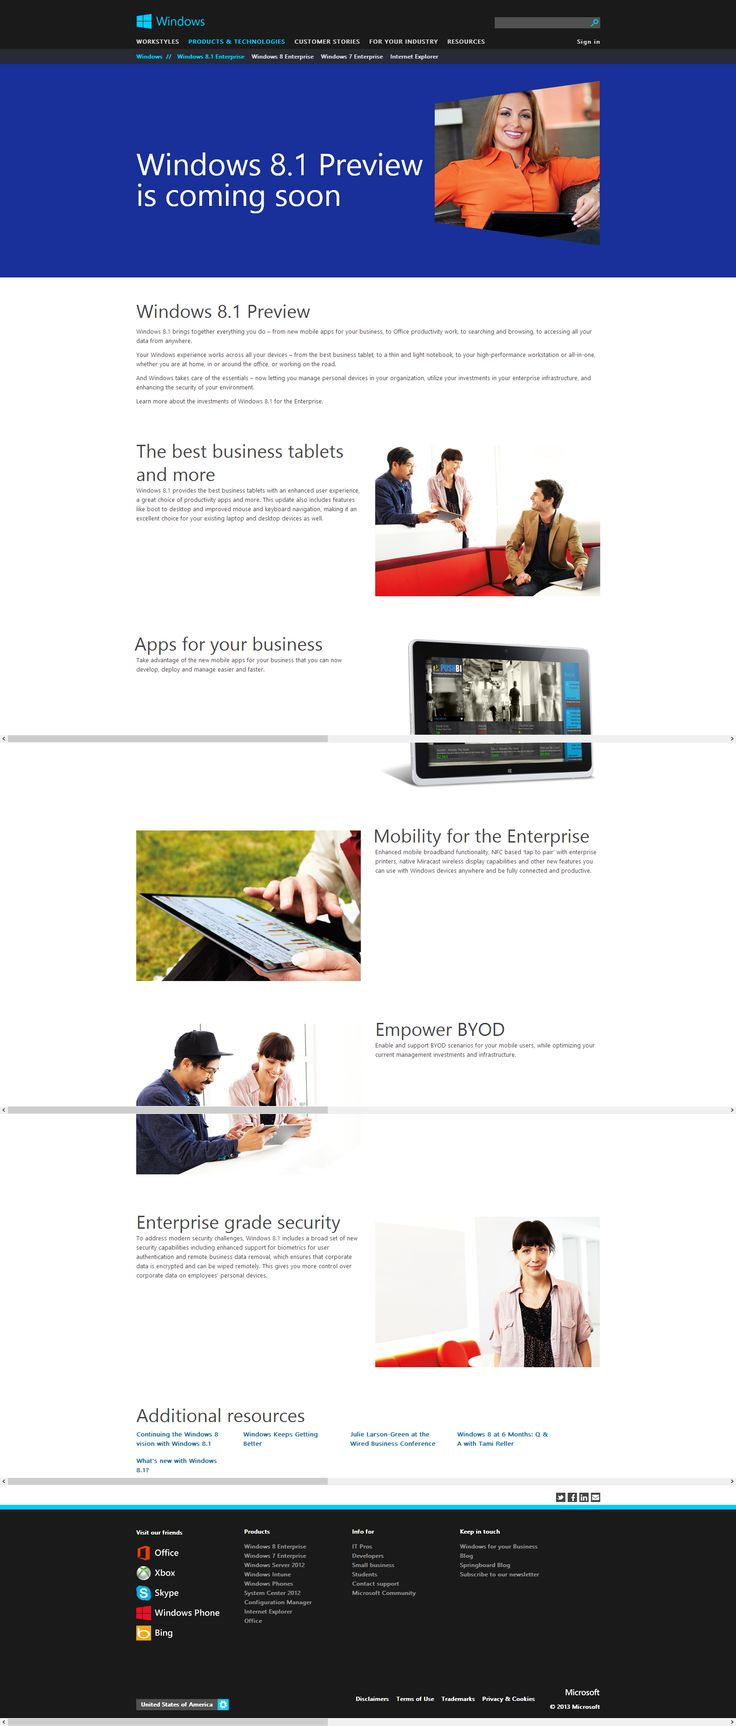 Www Bing Commail At Abc Microsoft Com: 107 Best Windows 8.1 Images On Pinterest